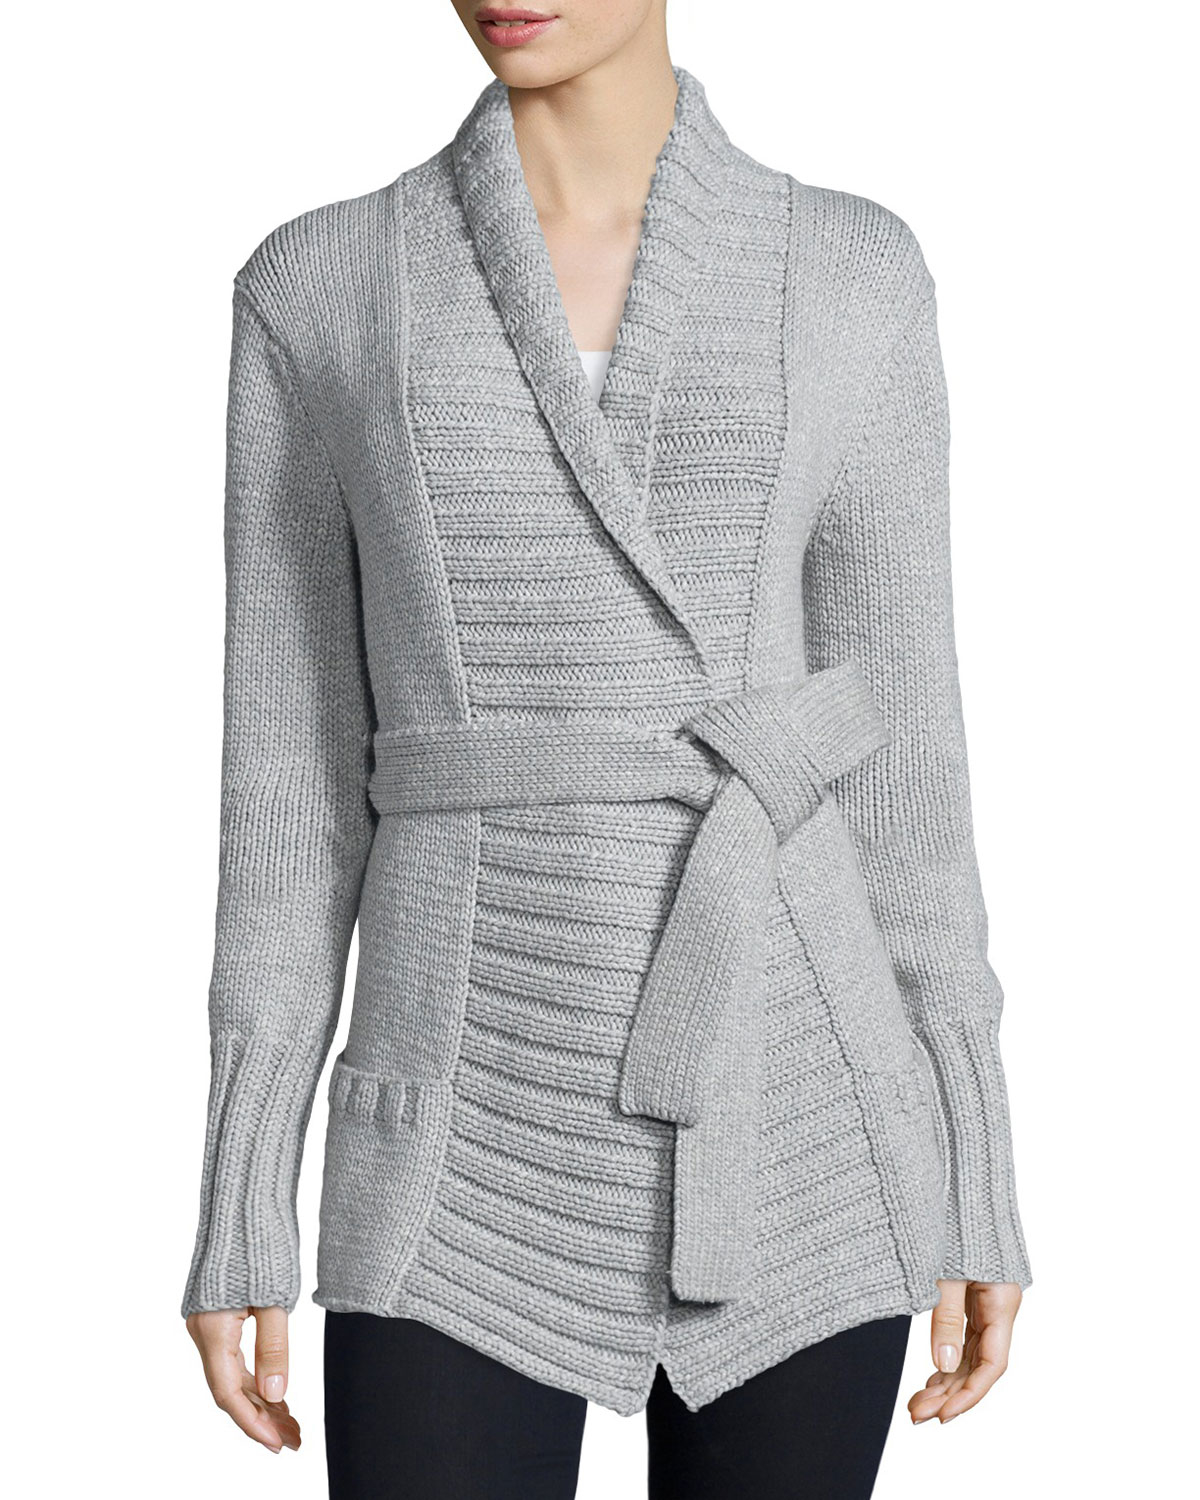 Michael kors Long-sleeve Belted Sweater in Gray | Lyst